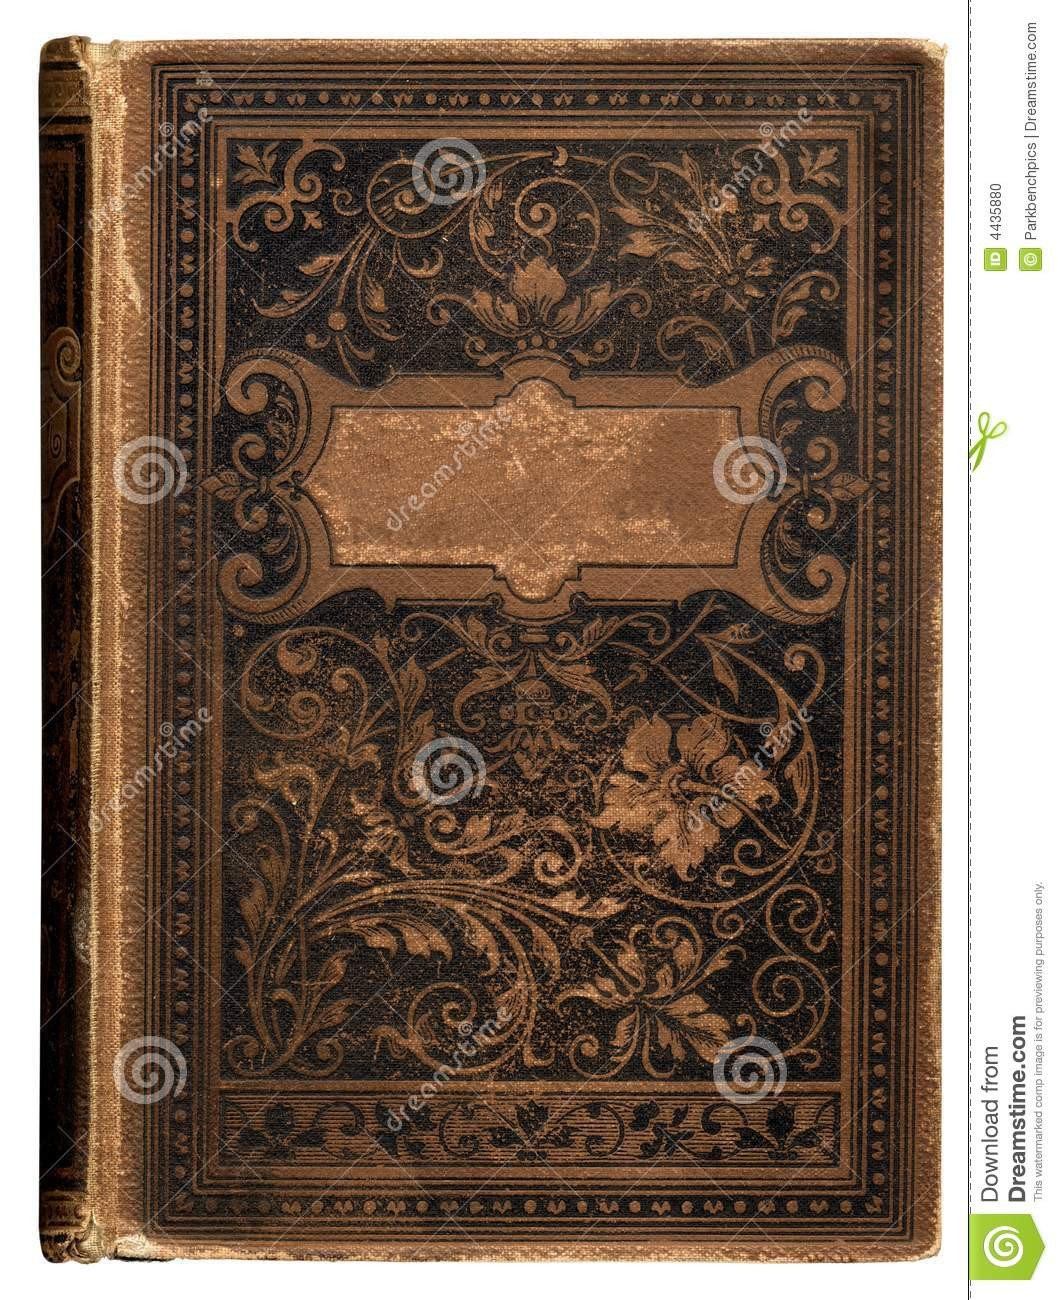 Old Book Cover Template Vintage Bookcover Stock Photo Image Of Flourishes